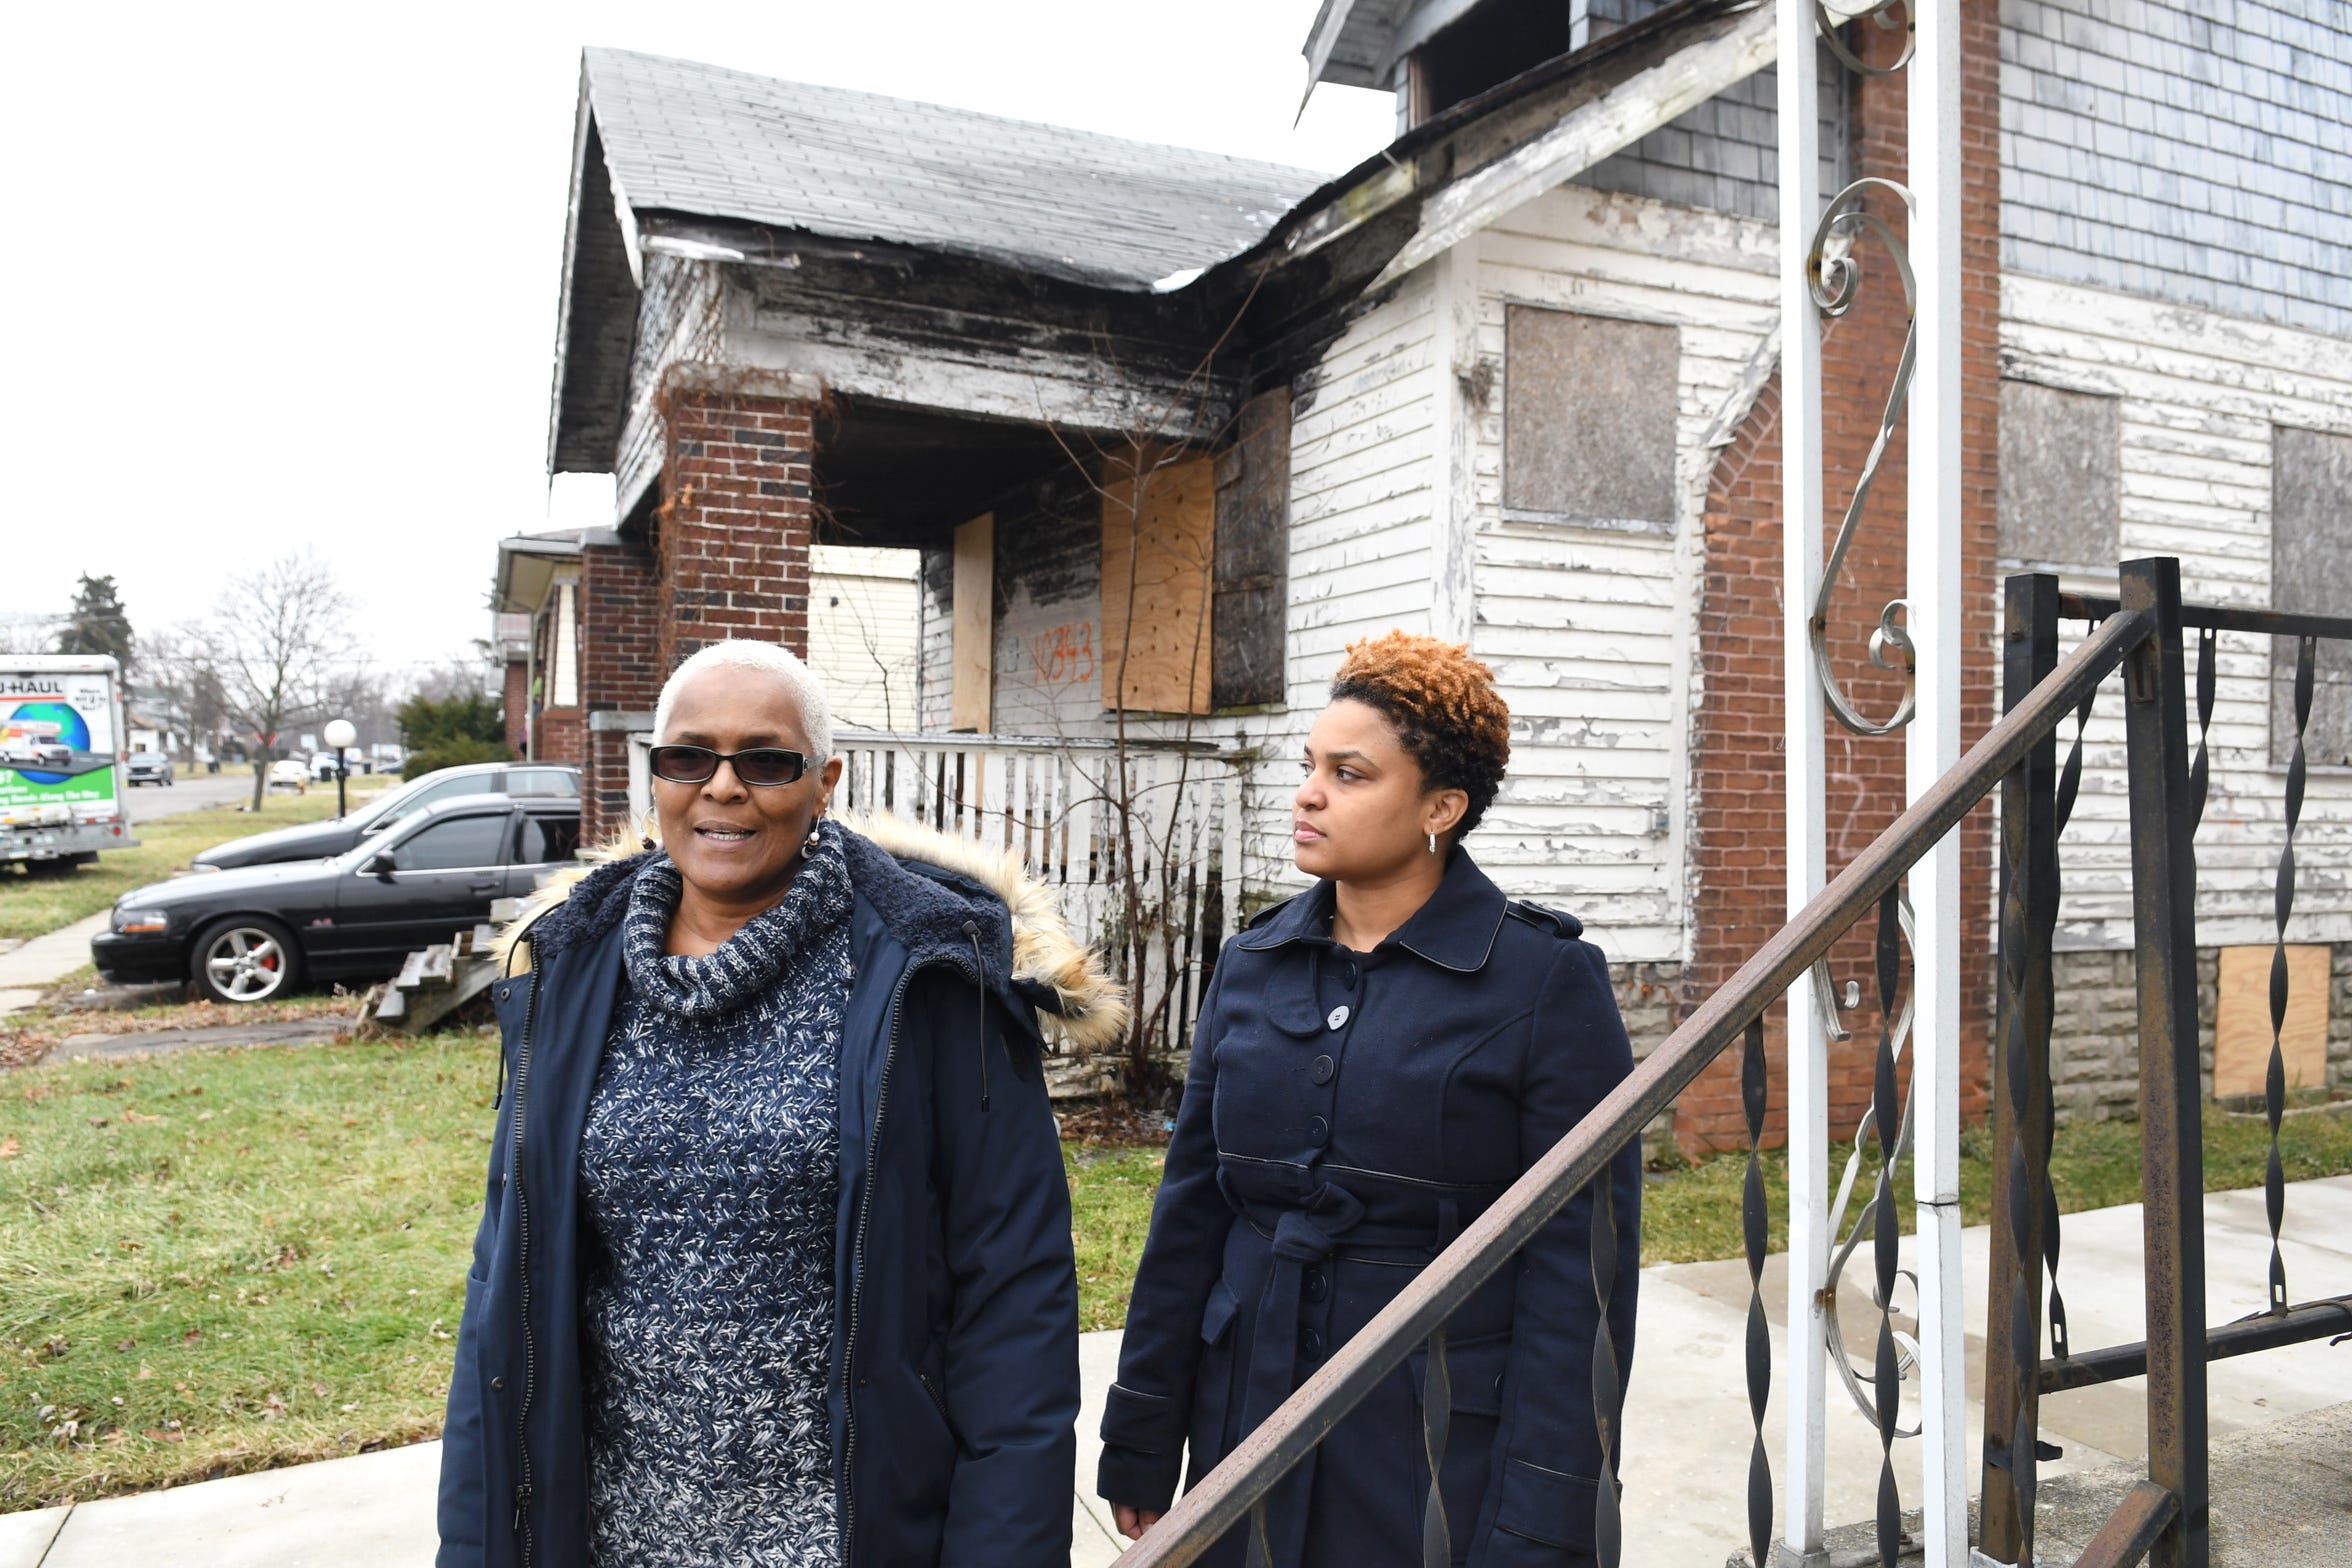 Jackie Smith, left, and her daughter Kellie Smith of Detroit talk about their efforts to have this long-vacant and abandoned house (background) their neighborhood demolished and removed.